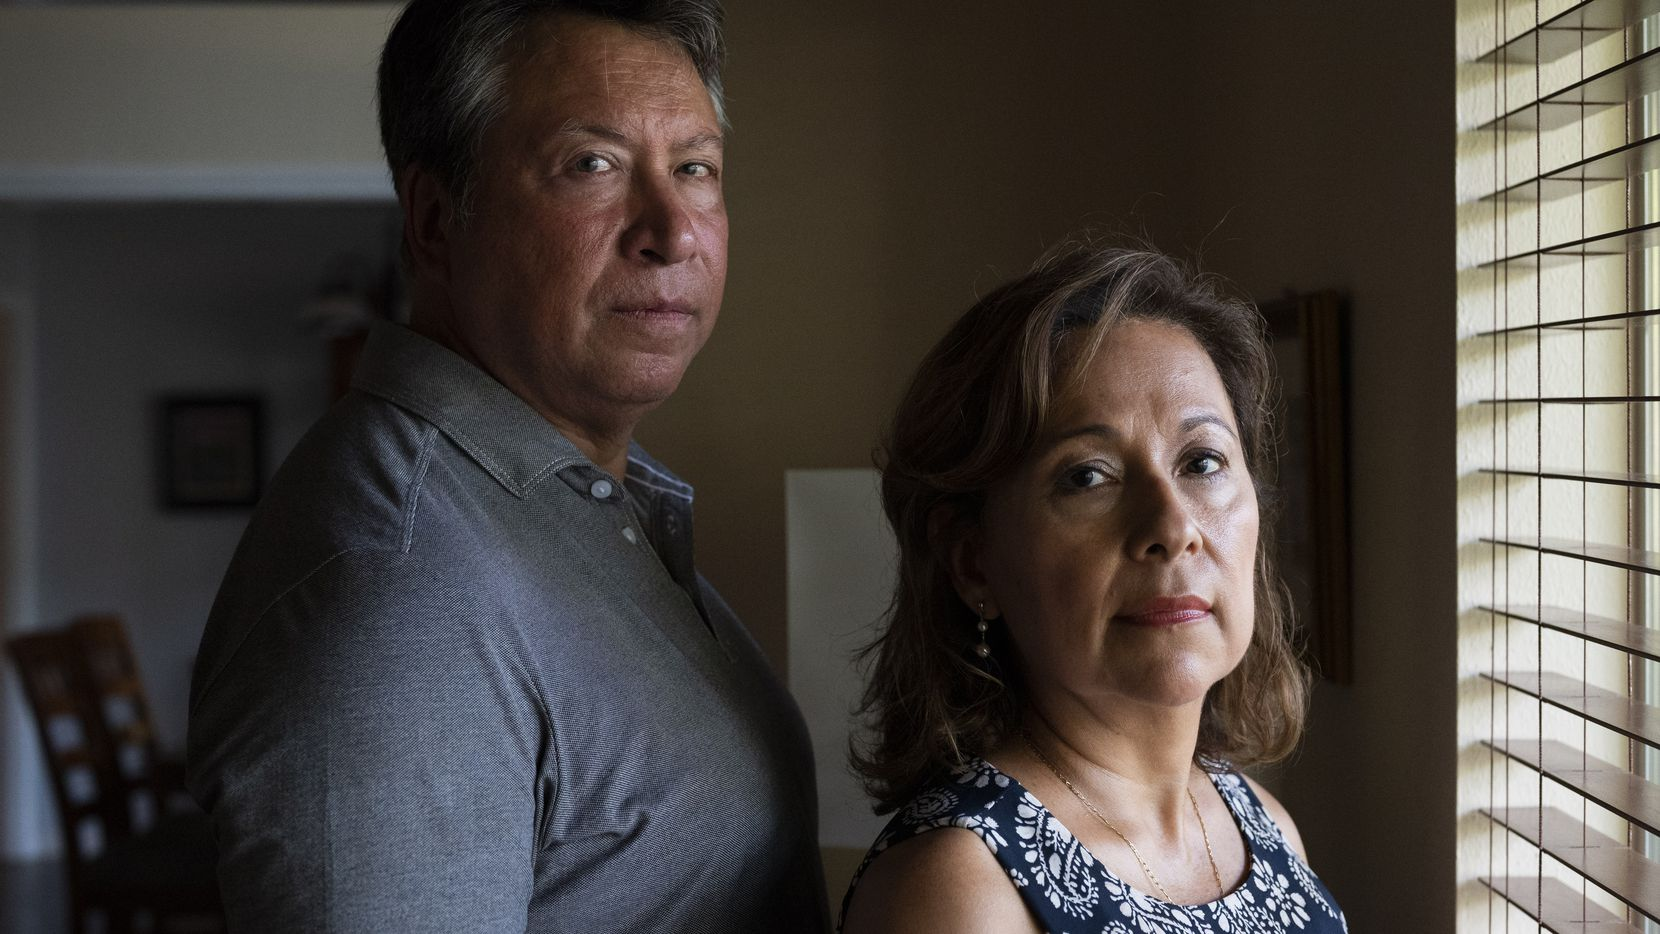 Benjamin Salazar and his wife Martha Carrasco Salazar at their home in Dallas, on Sept. 03, 2021. Benjamin used to work for American Express at the American Express Tower, across the World Trade Center, in New York City. On the day of the 9/11 attack, he was sick with a fever causing him to get late for work that day. Salazar is currently the Vice President at Comerica Bank, in Dallas.